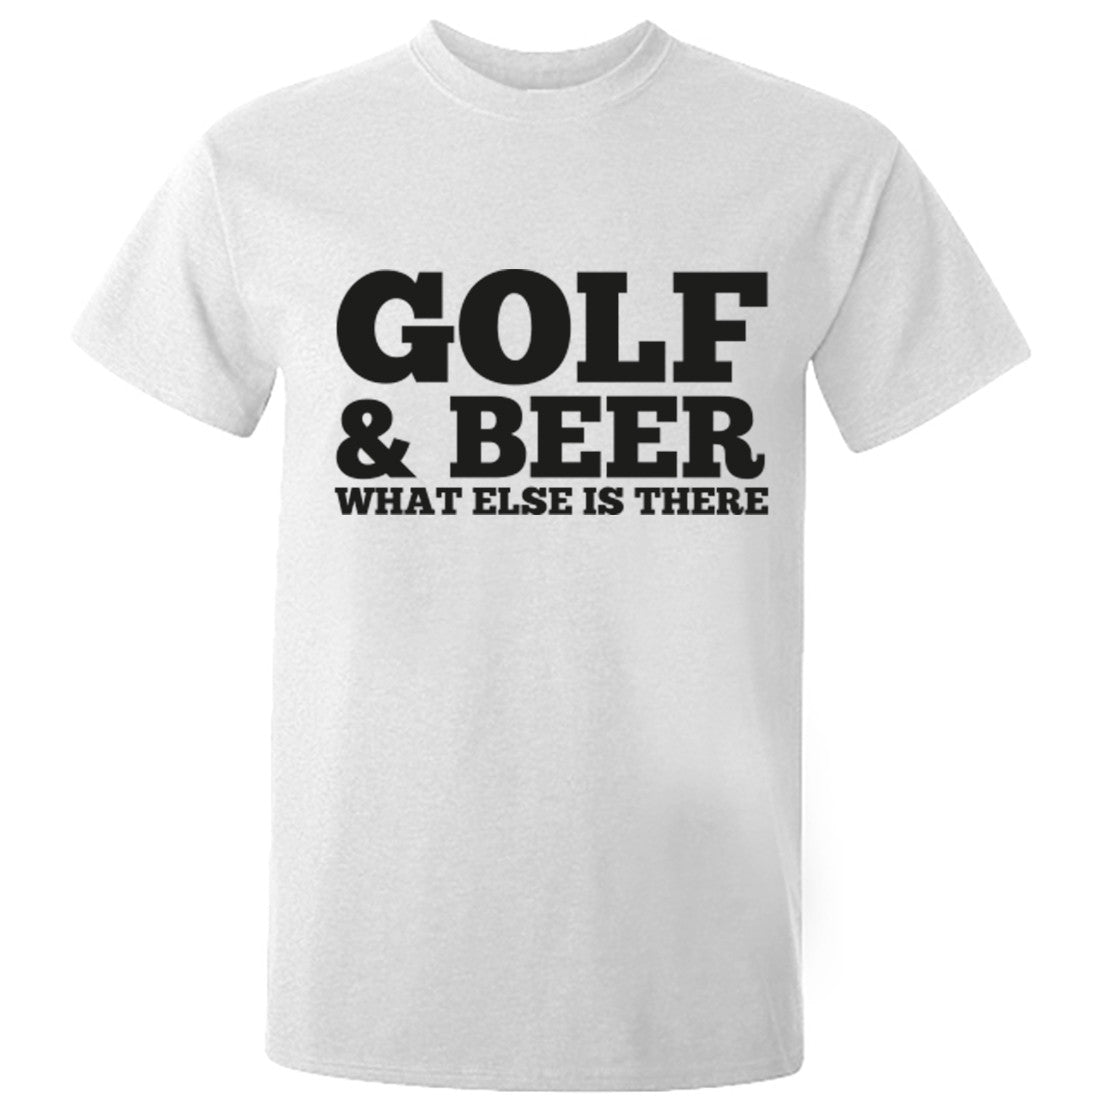 Golf And Beer What Else Is There Unisex Fit T-Shirt K0669 - Illustrated Identity Ltd.